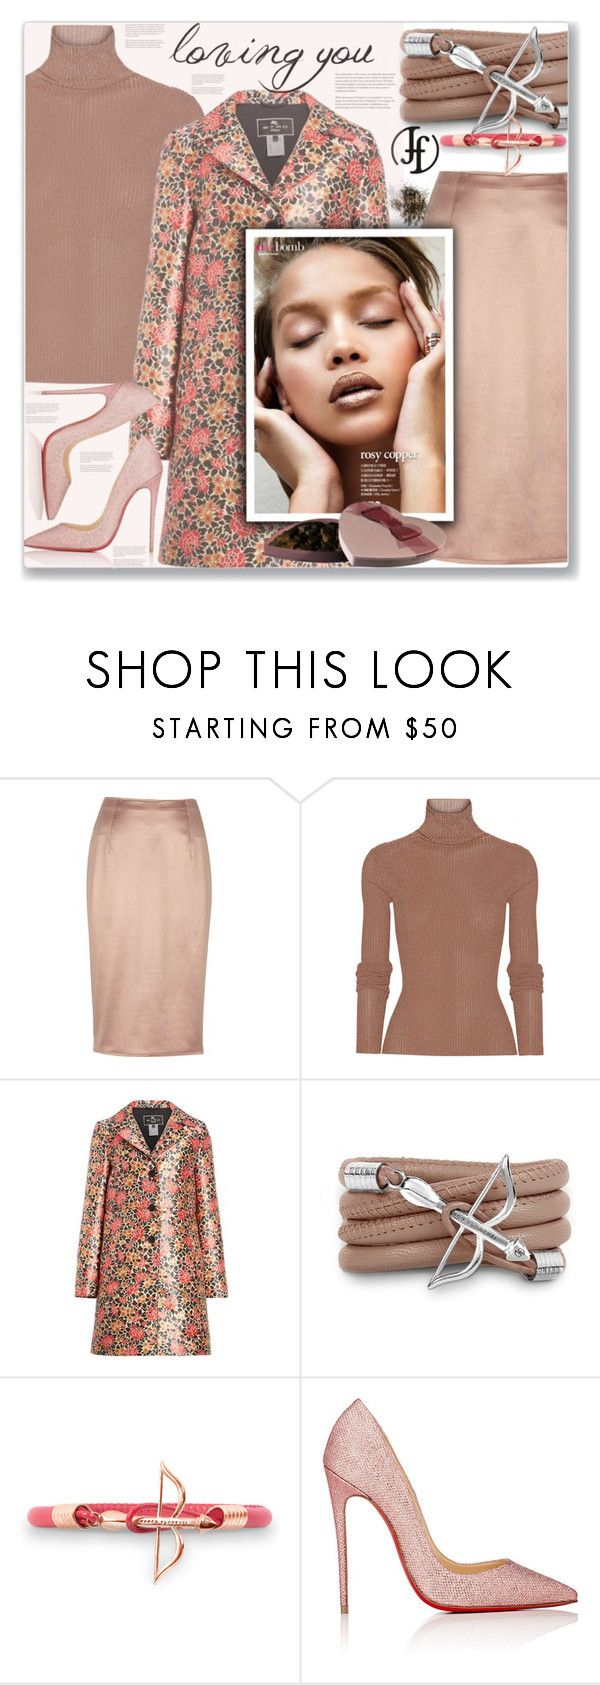 """Win $50 from Franco Florenz"" by sweta-gupta ❤ liked on Polyvore featuring River Island, TIBI, Etro, Monza, Novara, Christian Louboutin, Sanders, dreamy, loveisintheair and careforcoffee"